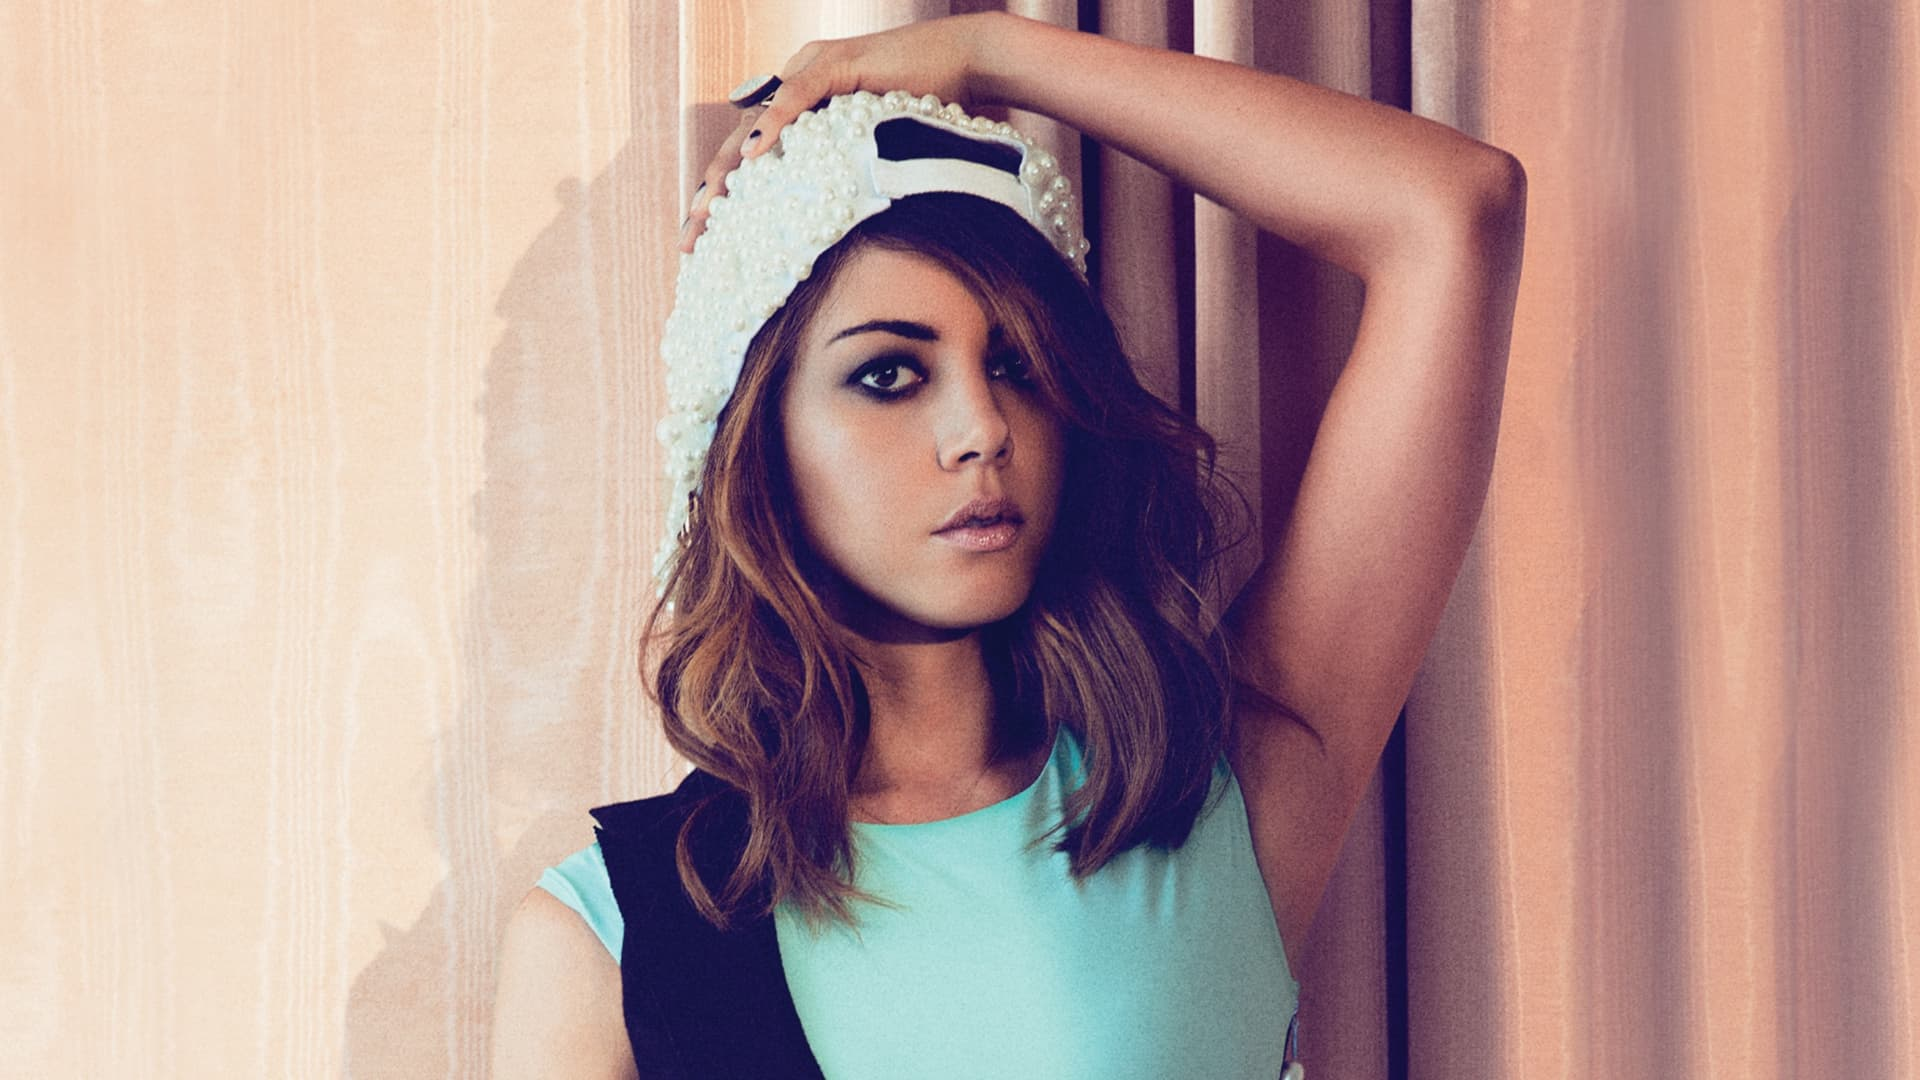 Aubrey plaza actress - 4 10